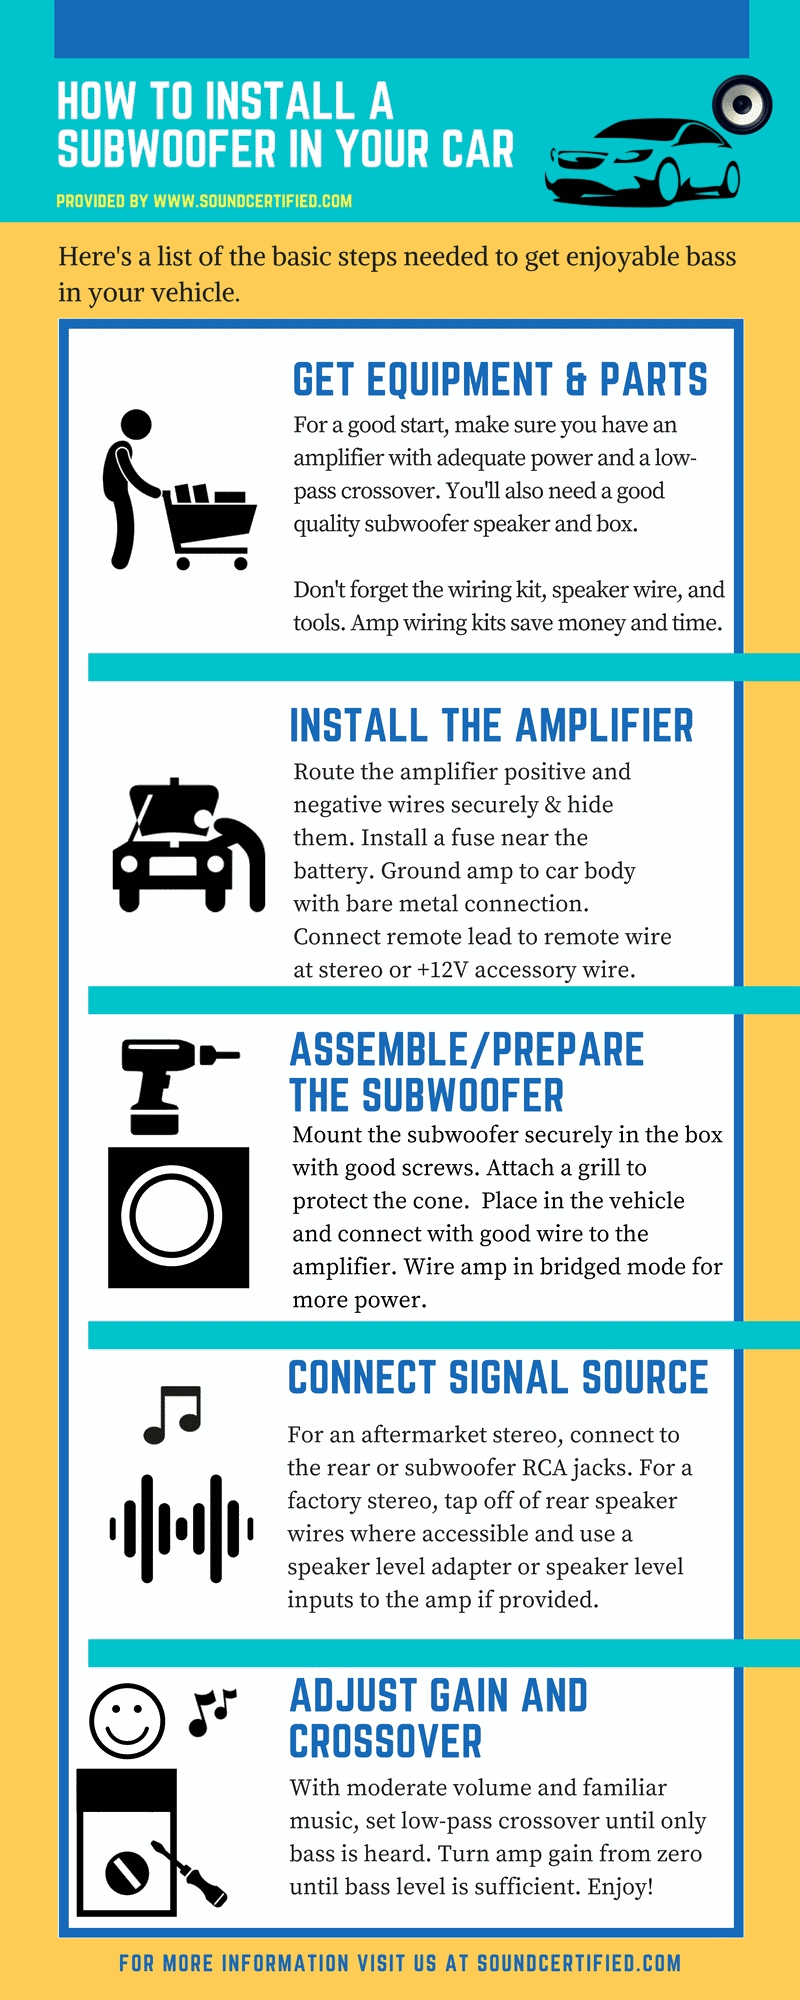 infographic for how to install a subwoofer in your car